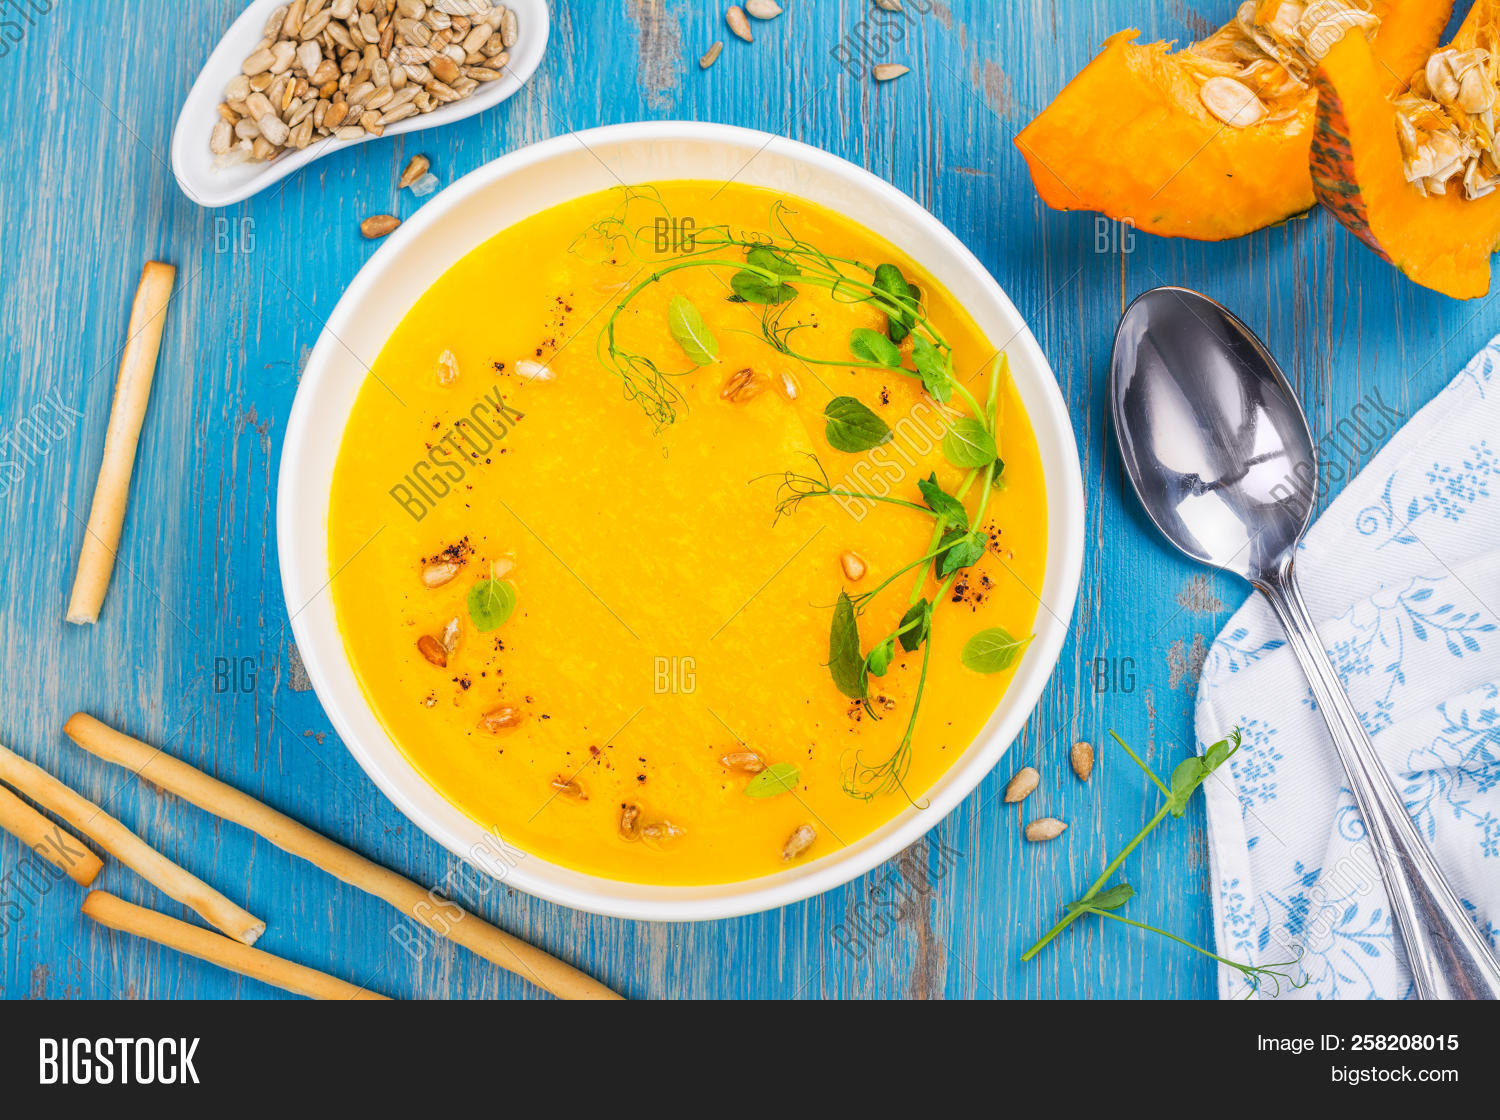 Hot Spice Pumpkin Soup Image & Photo (Free Trial) | Bigstock